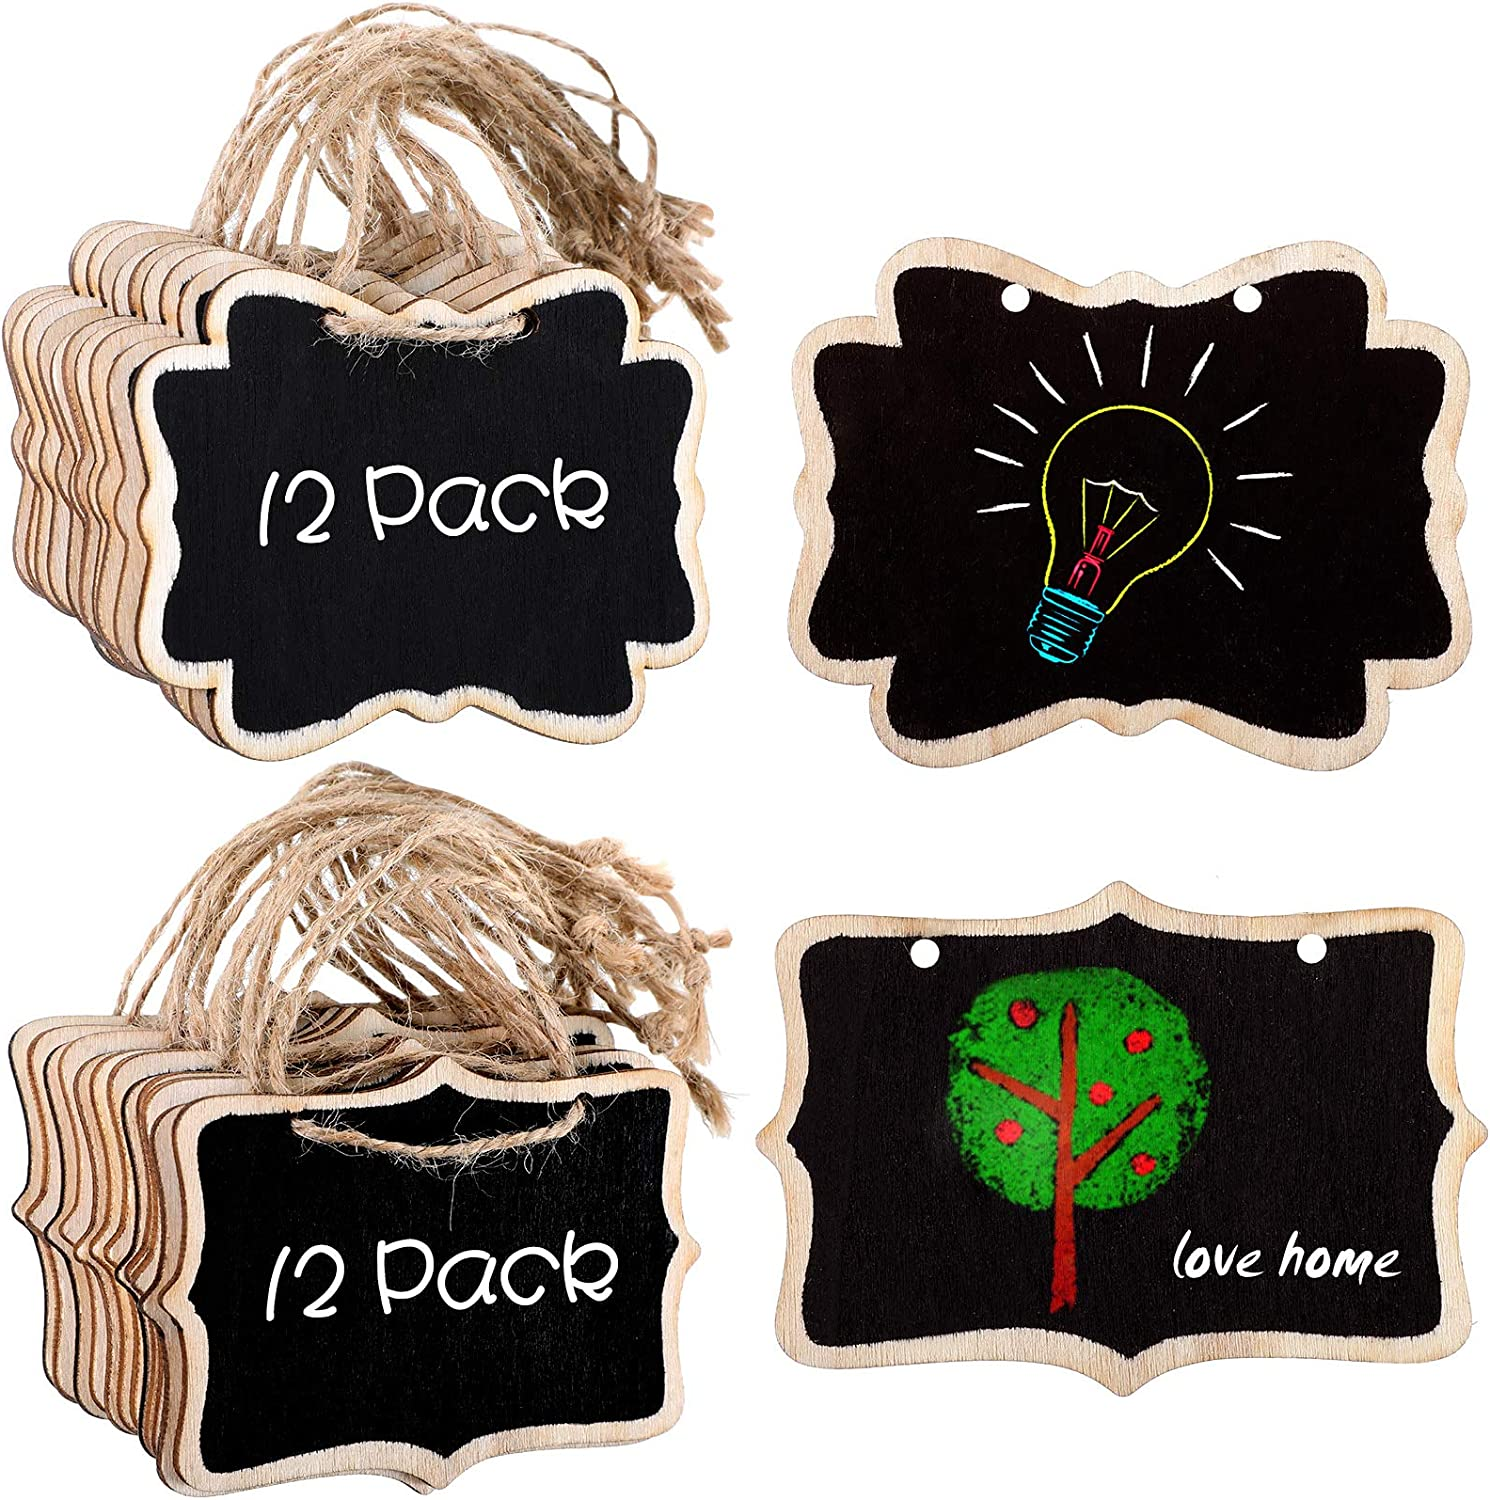 24 Pieces Mini Chalkboards Signs Rectangle and Cloud Shaped Chalkboard Tags Wooden Message Board Signs Small Blackboard with Hanging Rope for Food Labels Wedding Party Decorations